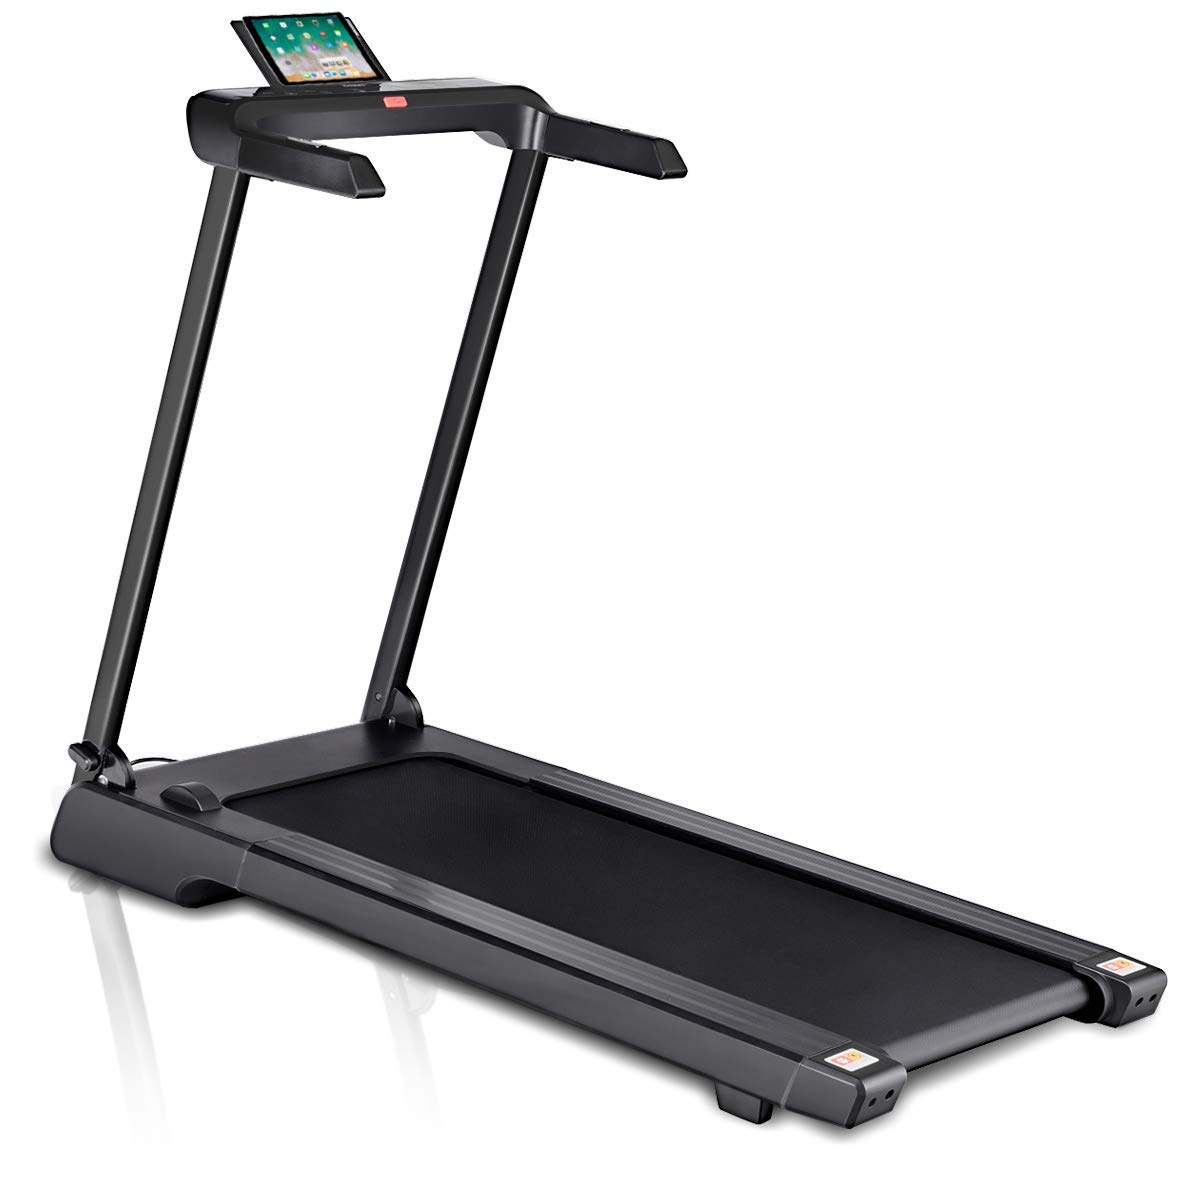 Goplus 2.25 HP Folding Treadmill Electric Cardio Fitness Jogging Running Machine Portable Motorized Power Slim Treadmill with Sports App and LED Display (Black)